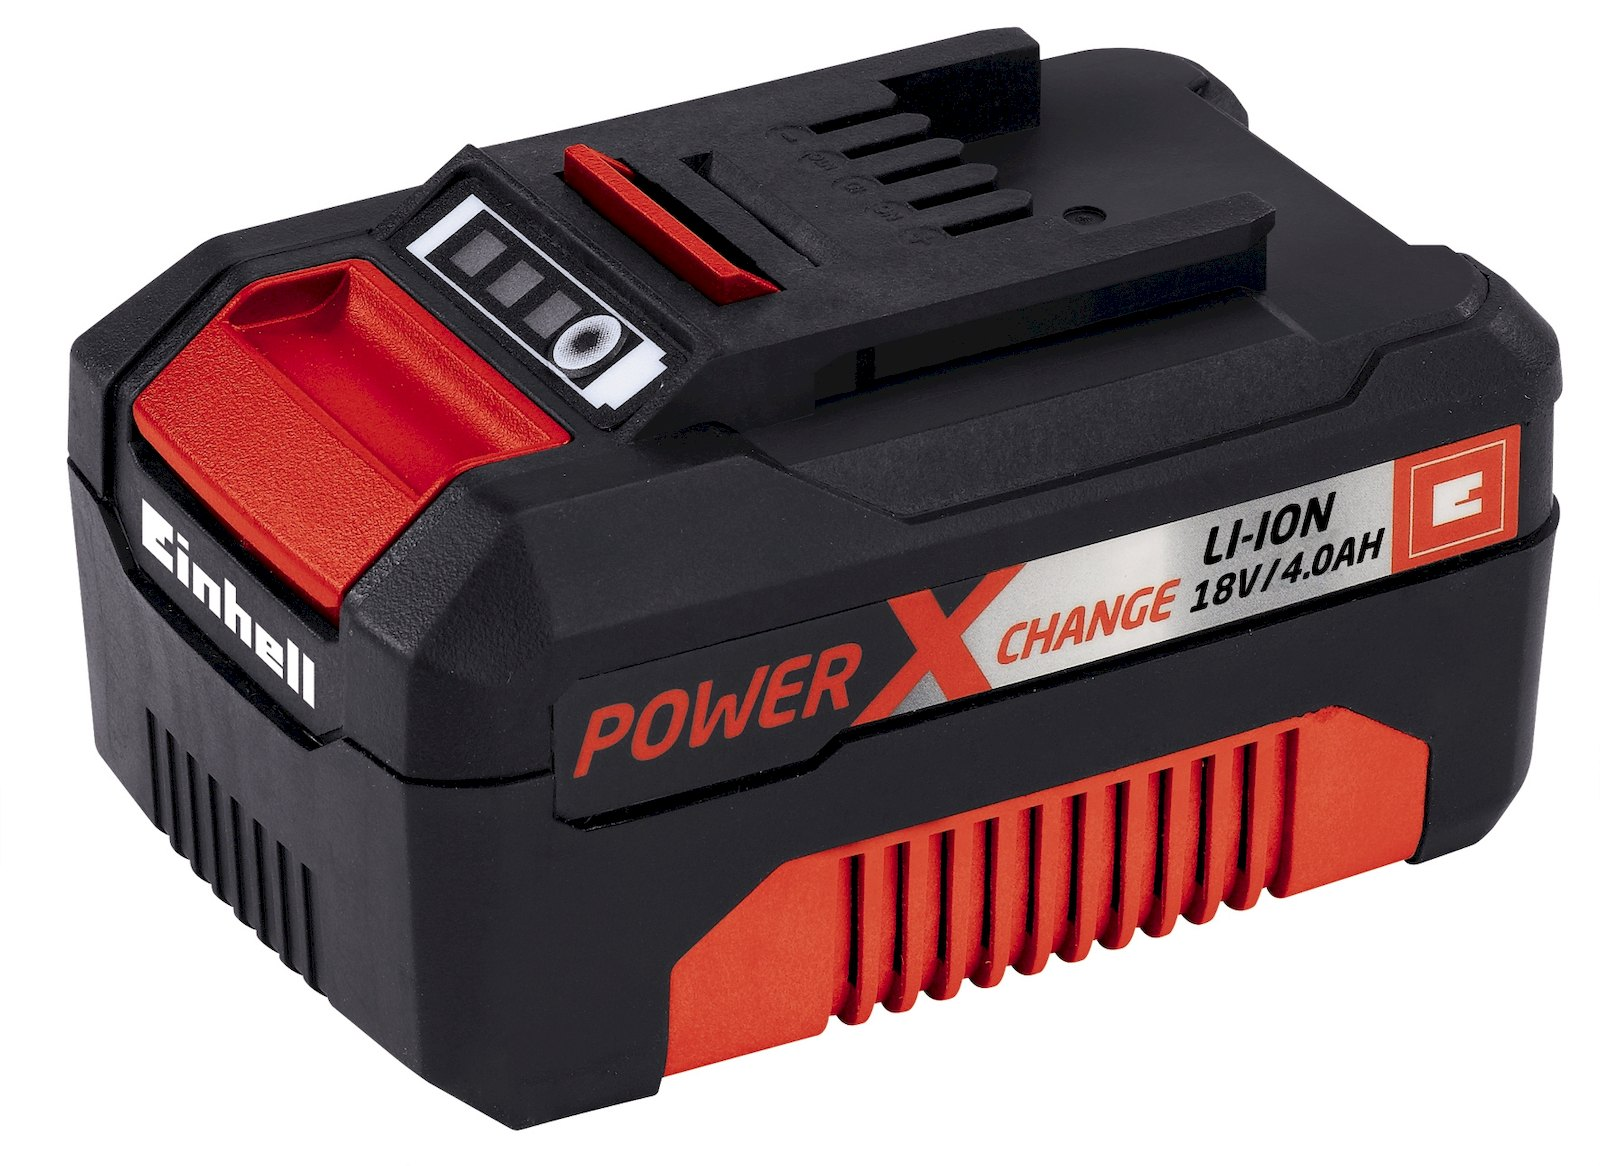 Akku Einhell Power X-Change 18 V/4,0 Ah